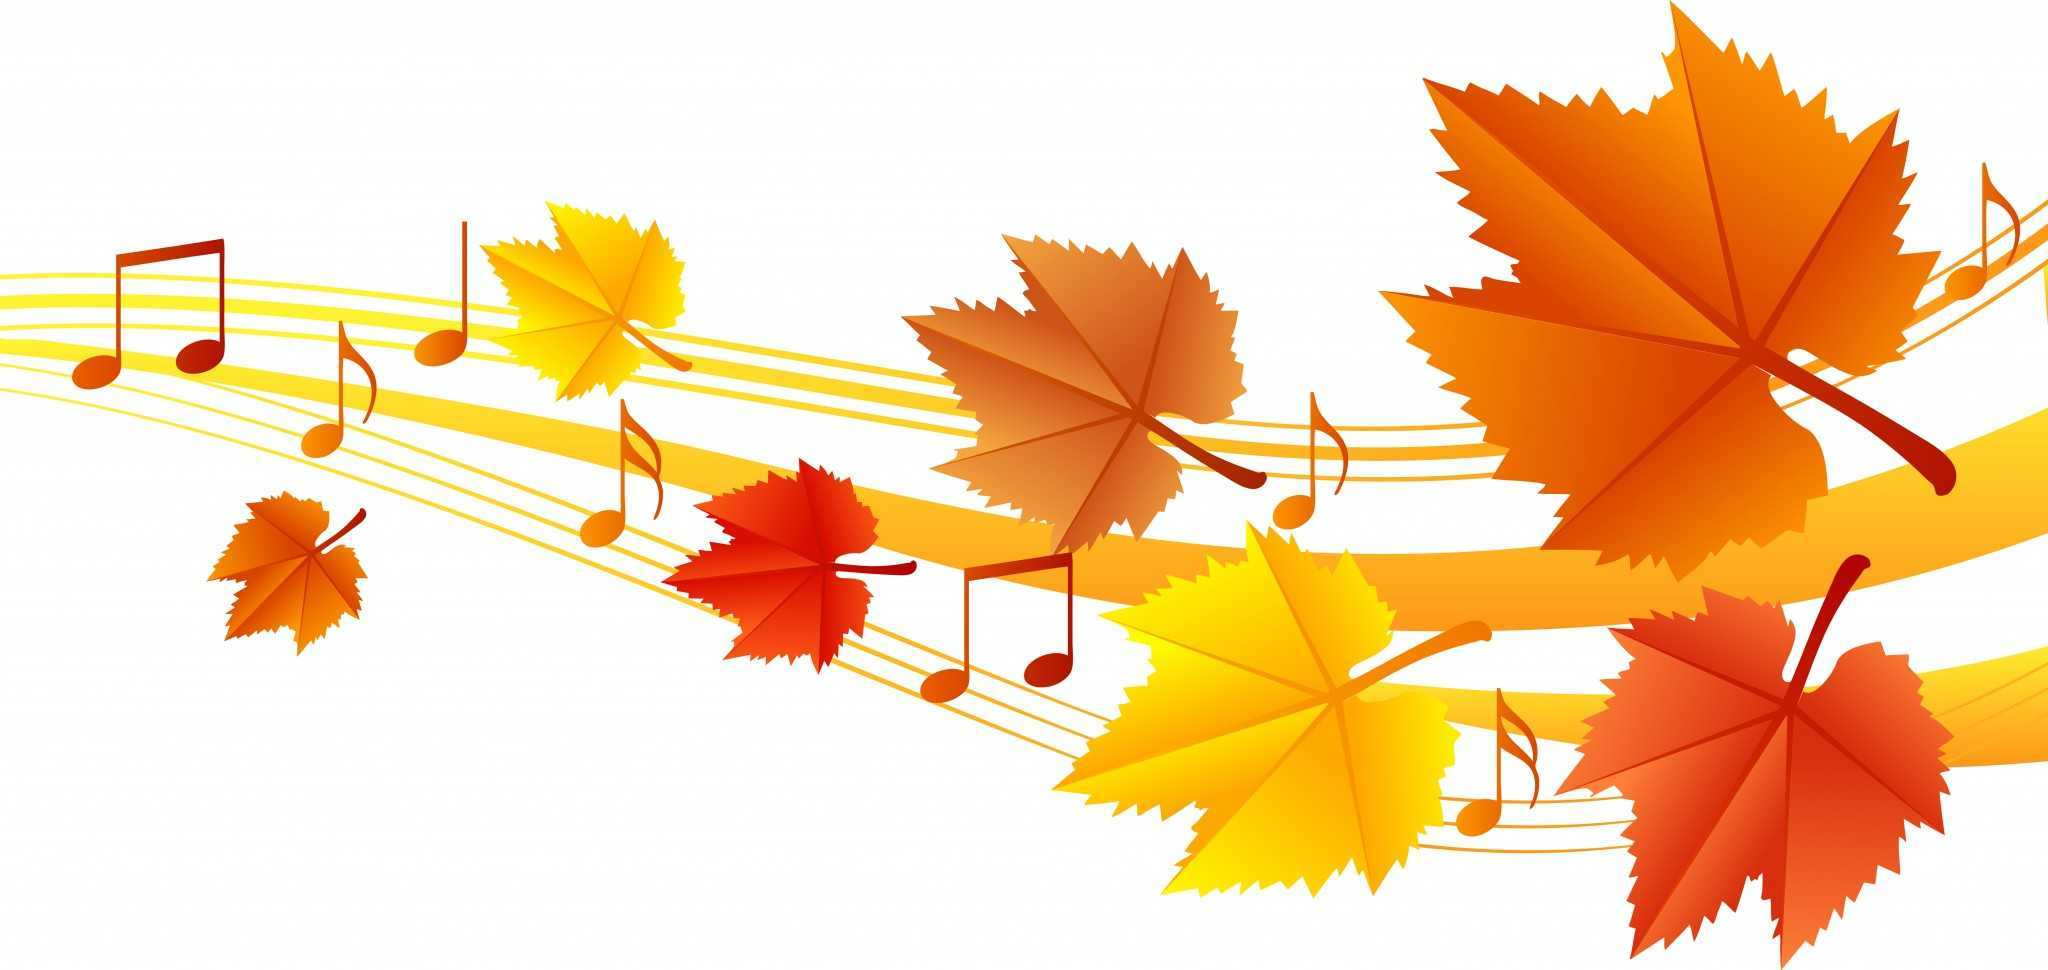 soloing over autumn leaves